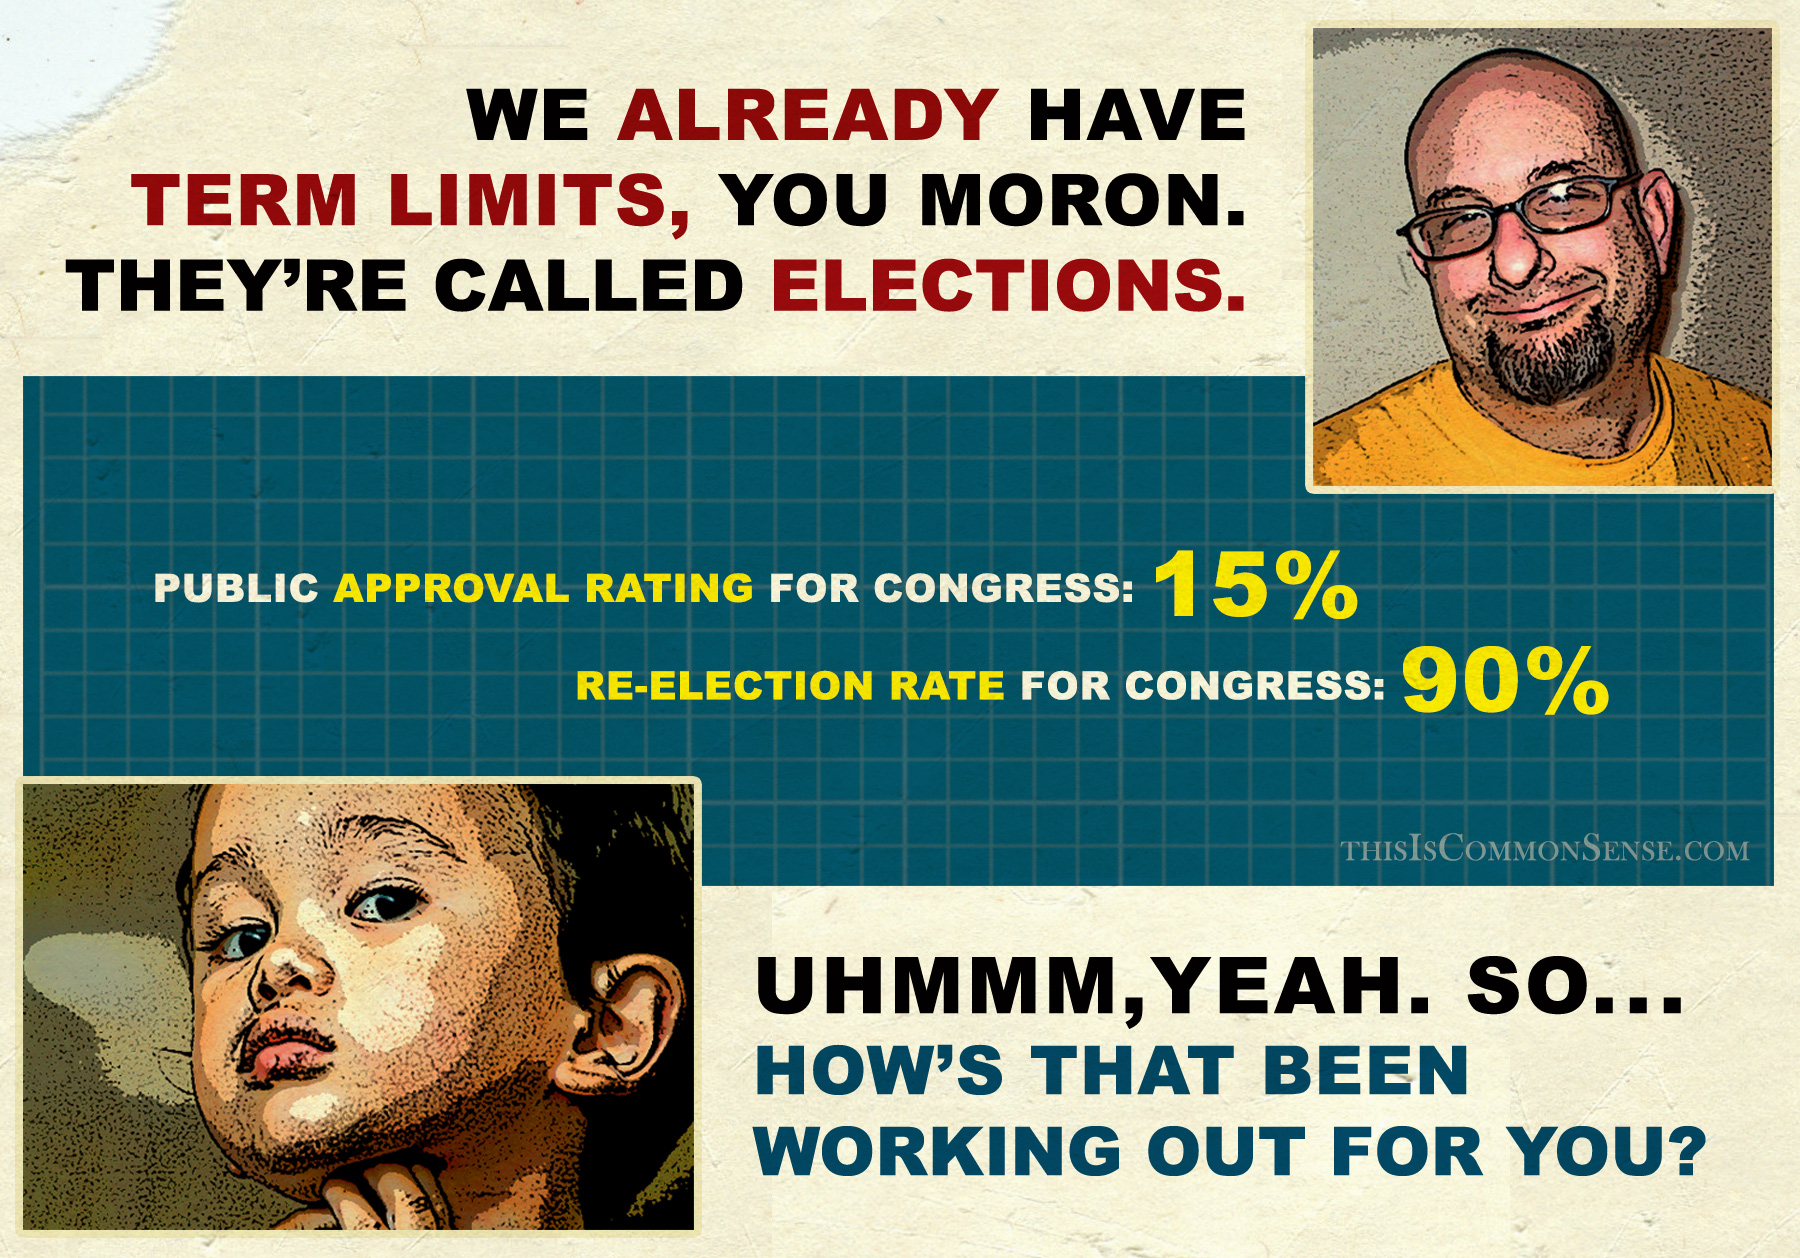 Term Limits, meme, illustration, congressional approval rating, re-election rate